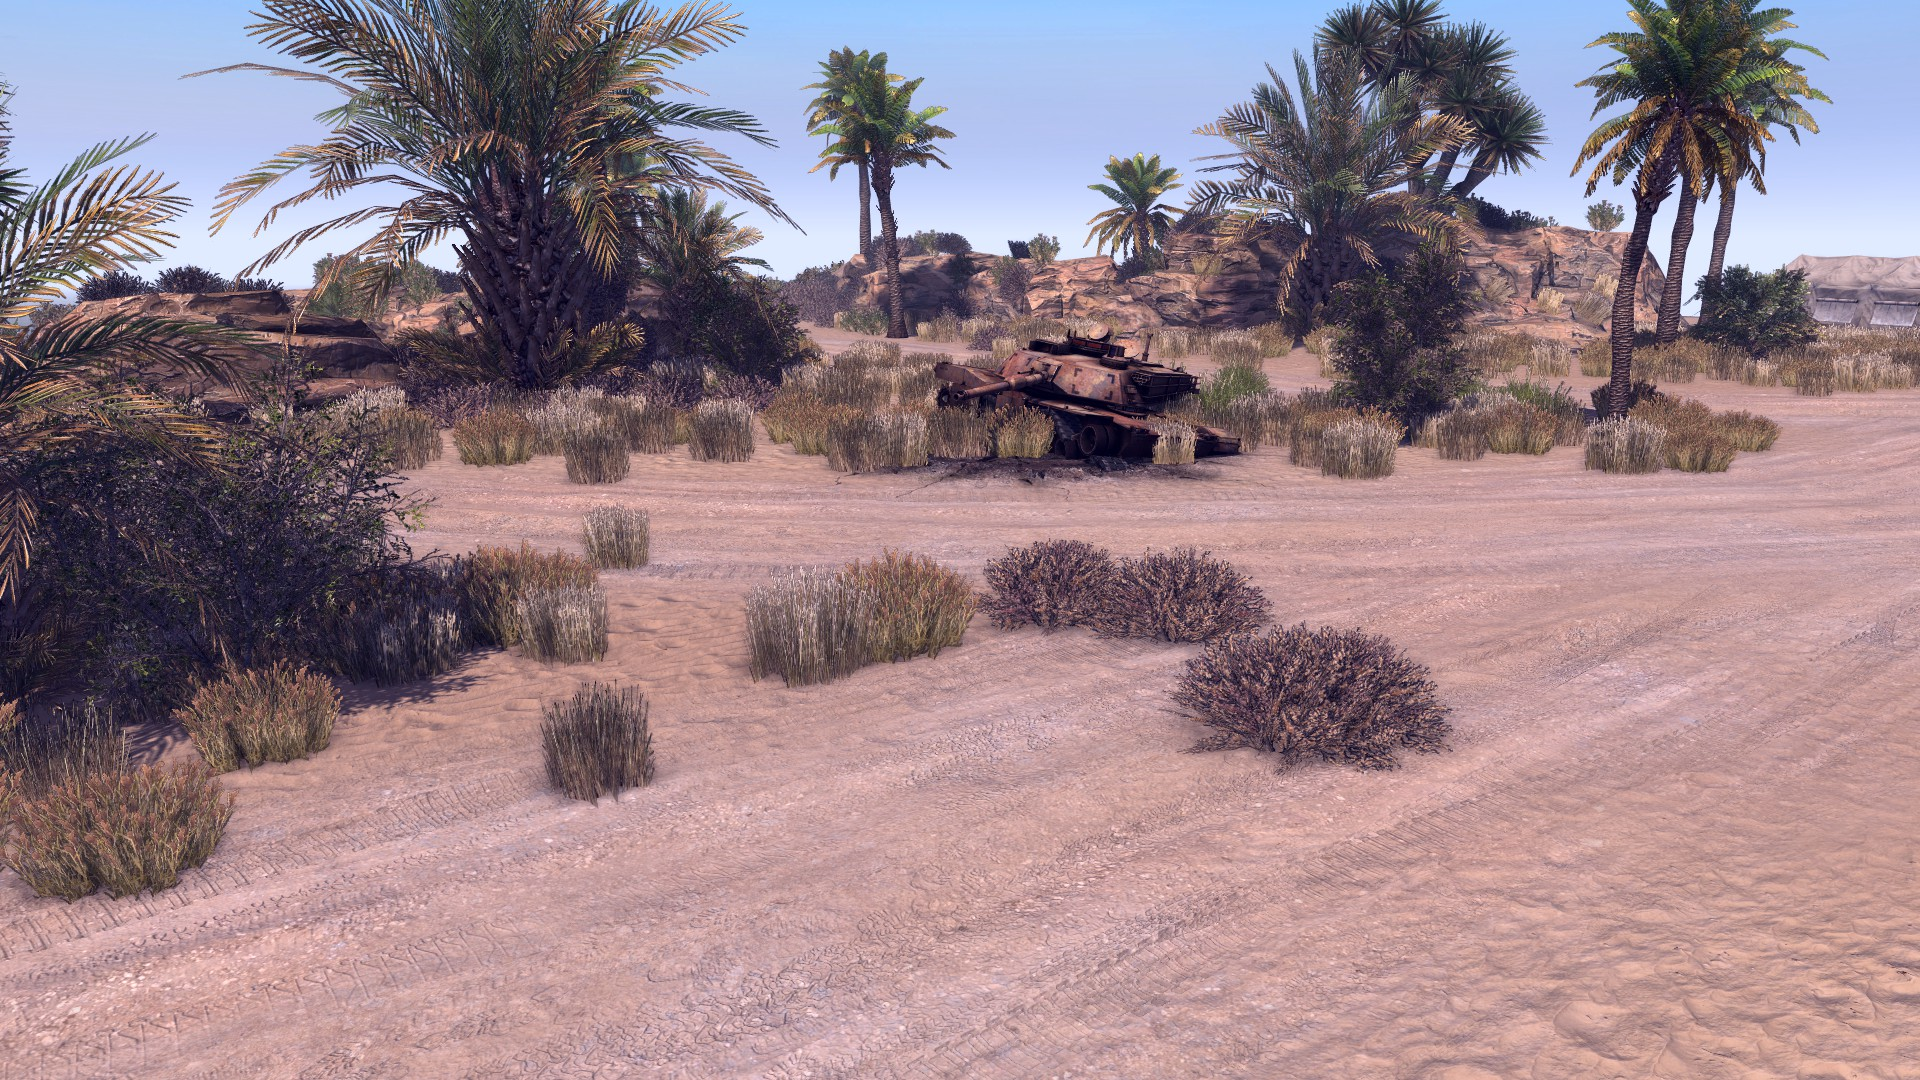 Скачать Aussie's Desert Warfare Map 8v8 (CTA — 0.940.0) (v22.07.2017) — бесплатно